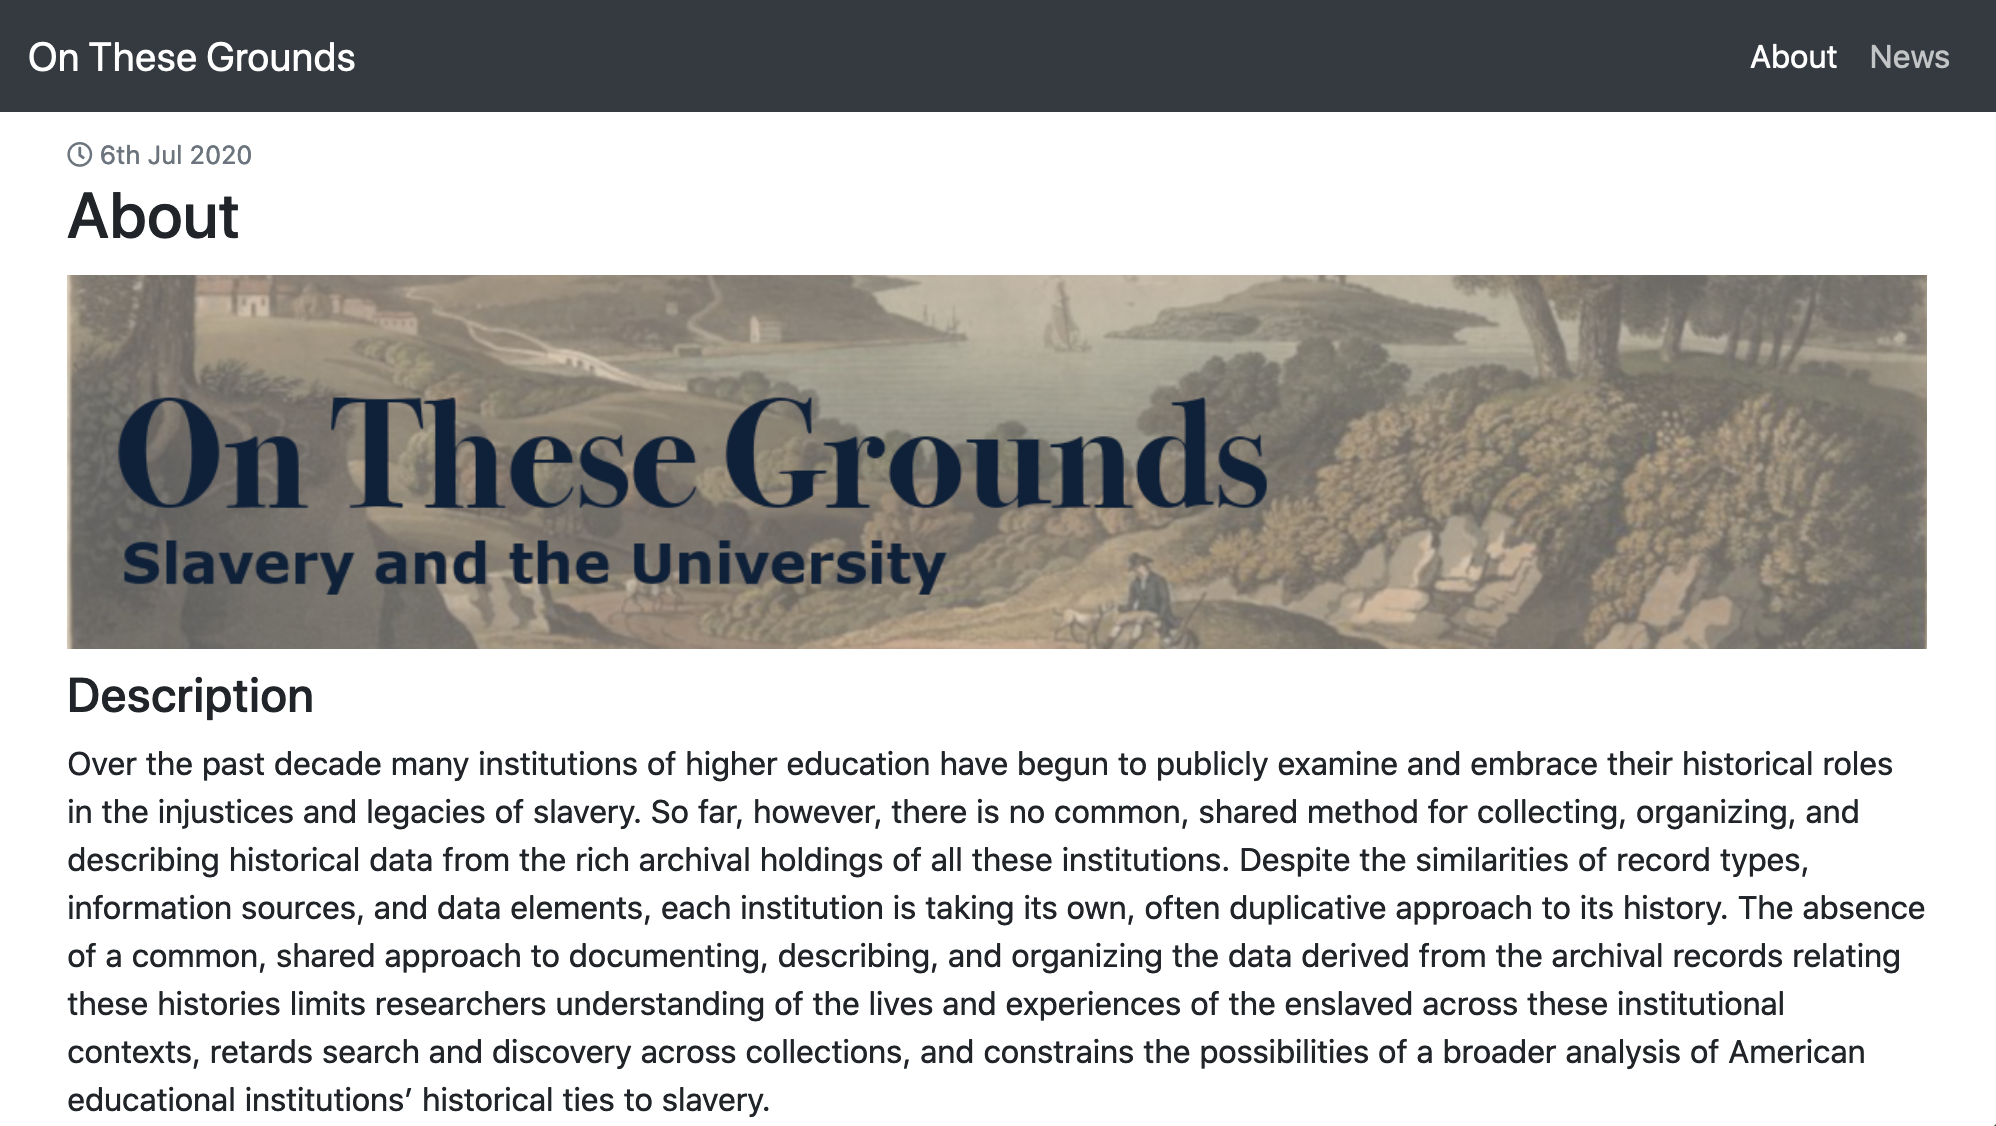 On These Grounds: Slavery and the University